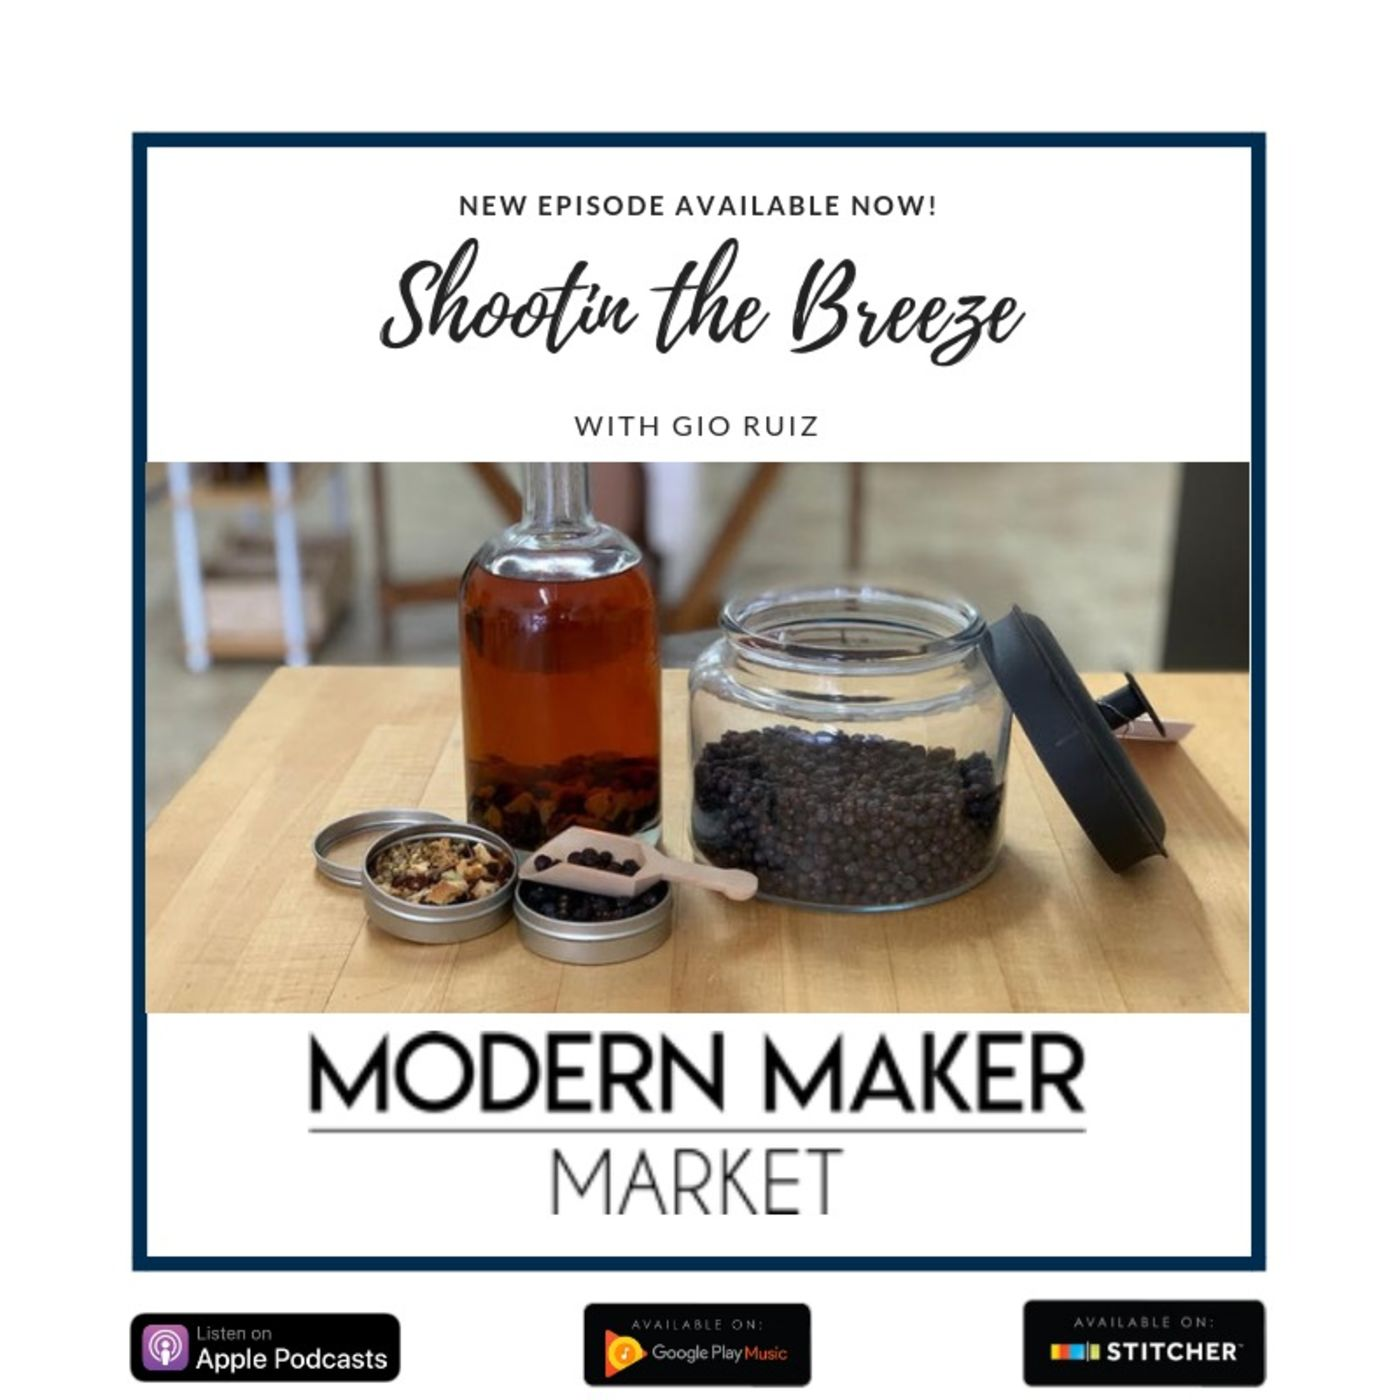 Modern Maker Market, Homesteading in the modern era.